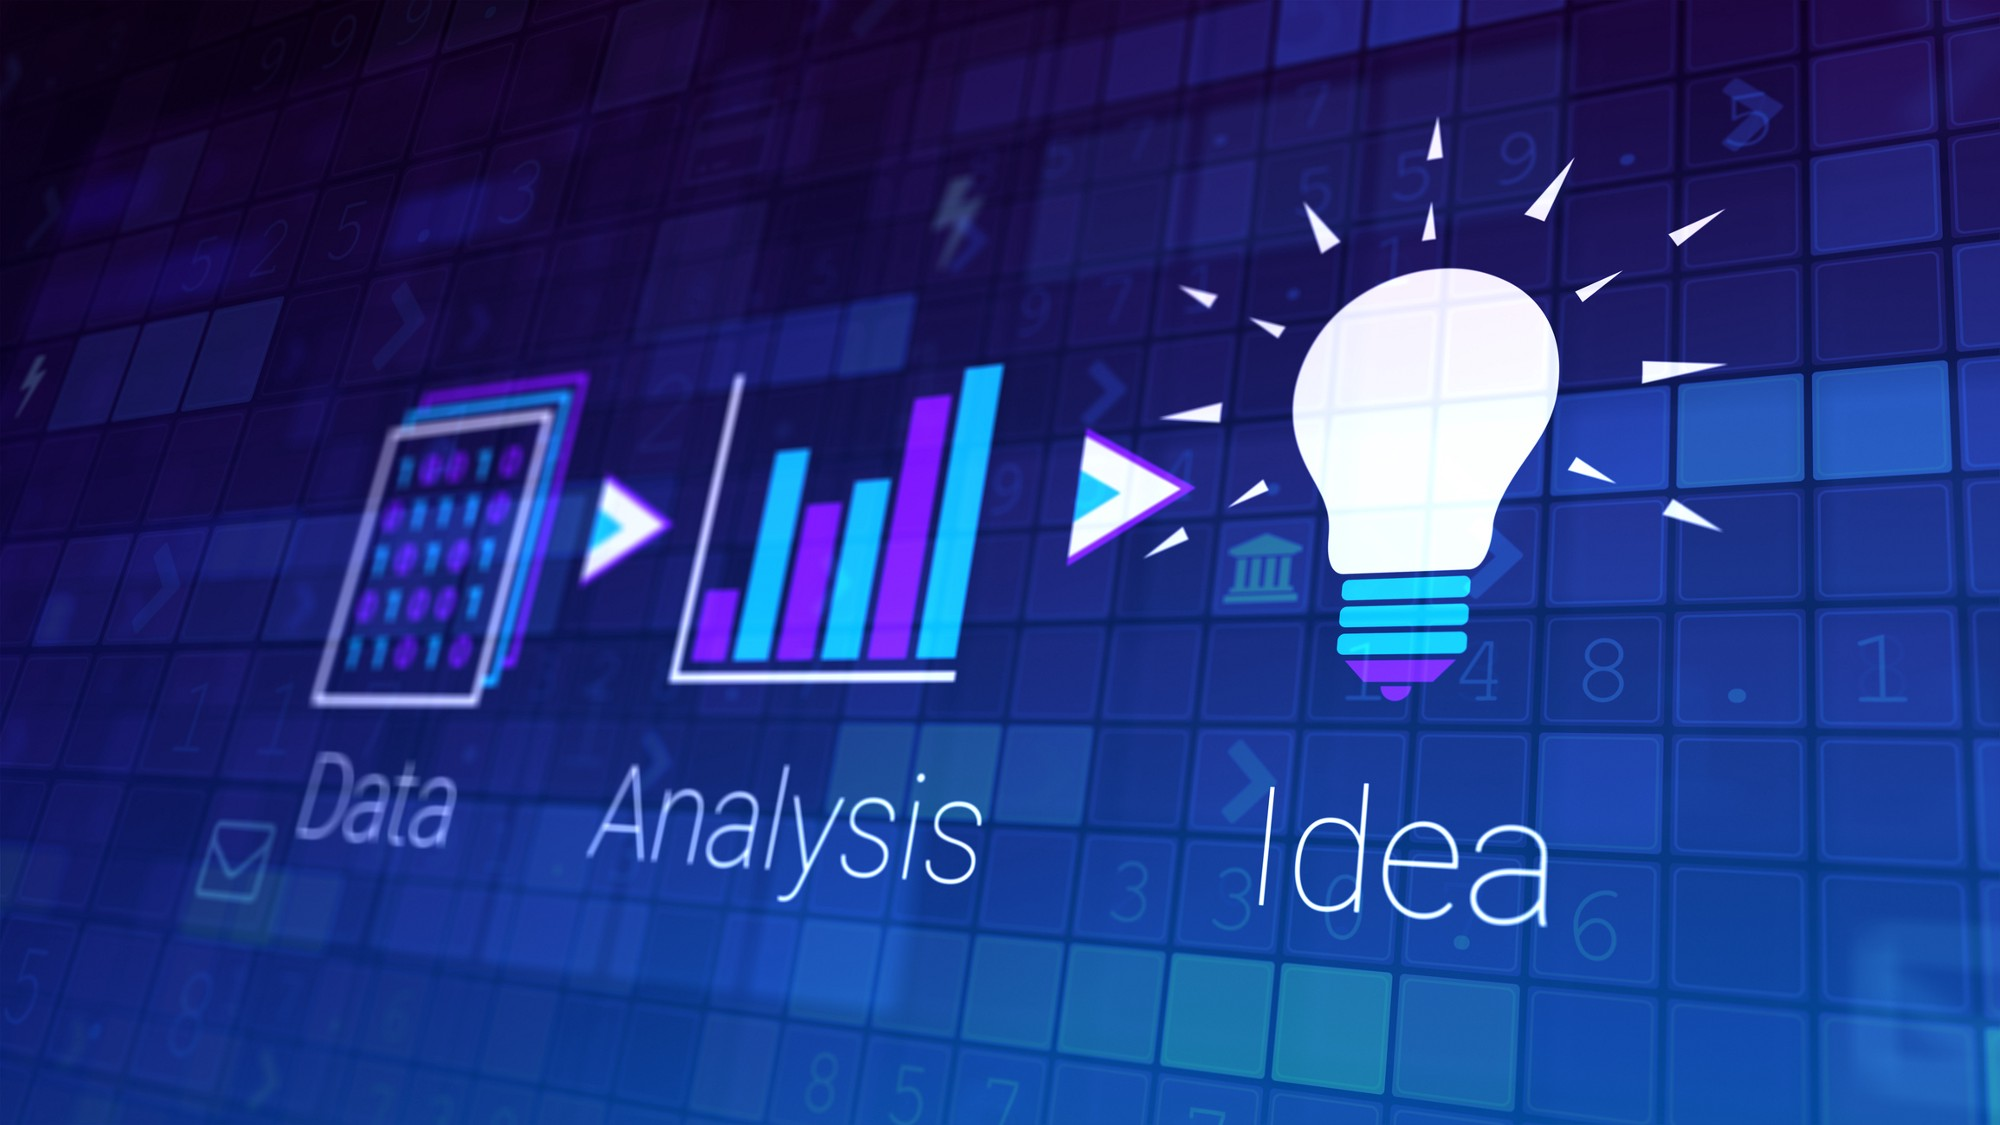 The need for data analysis